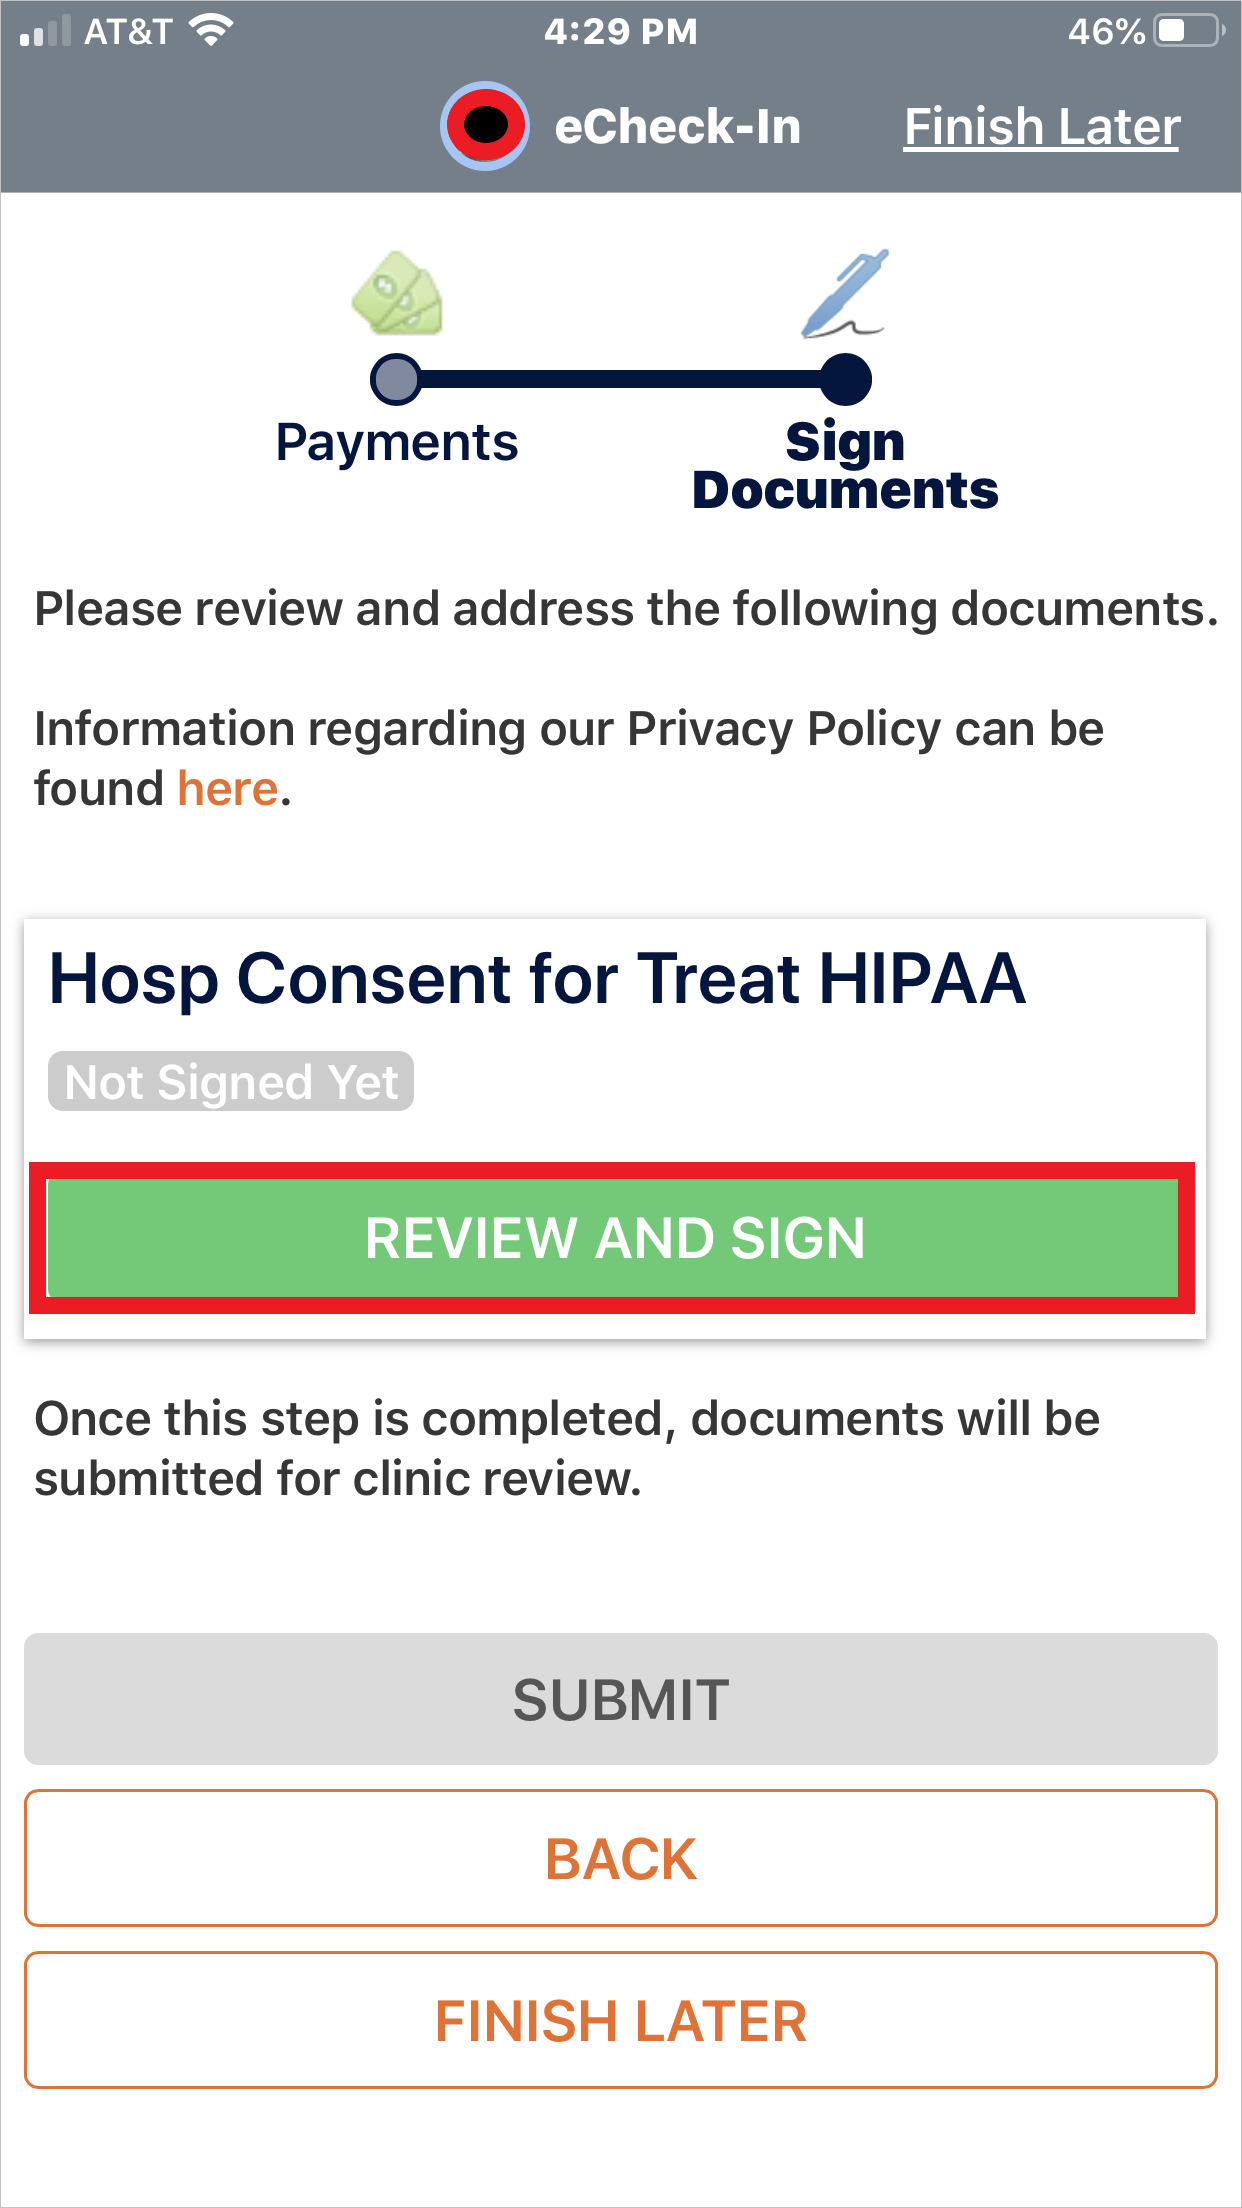 Review and Sign HIPAA Documents screenshot